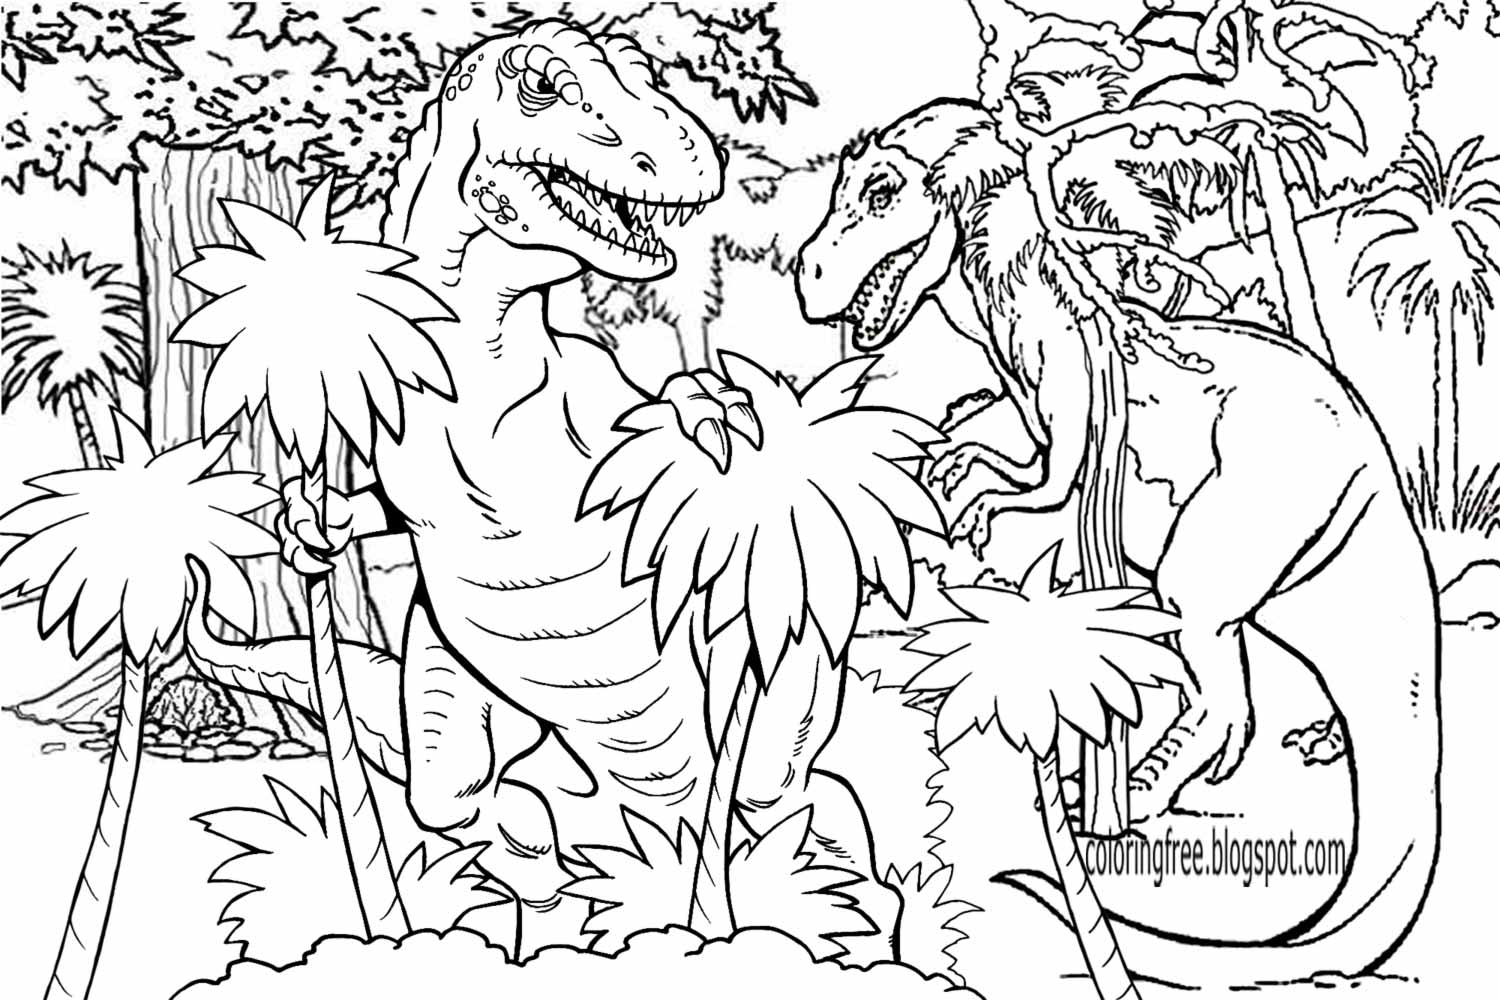 dino coloring page the good dinosaur coloring pages to download and print for dino coloring page